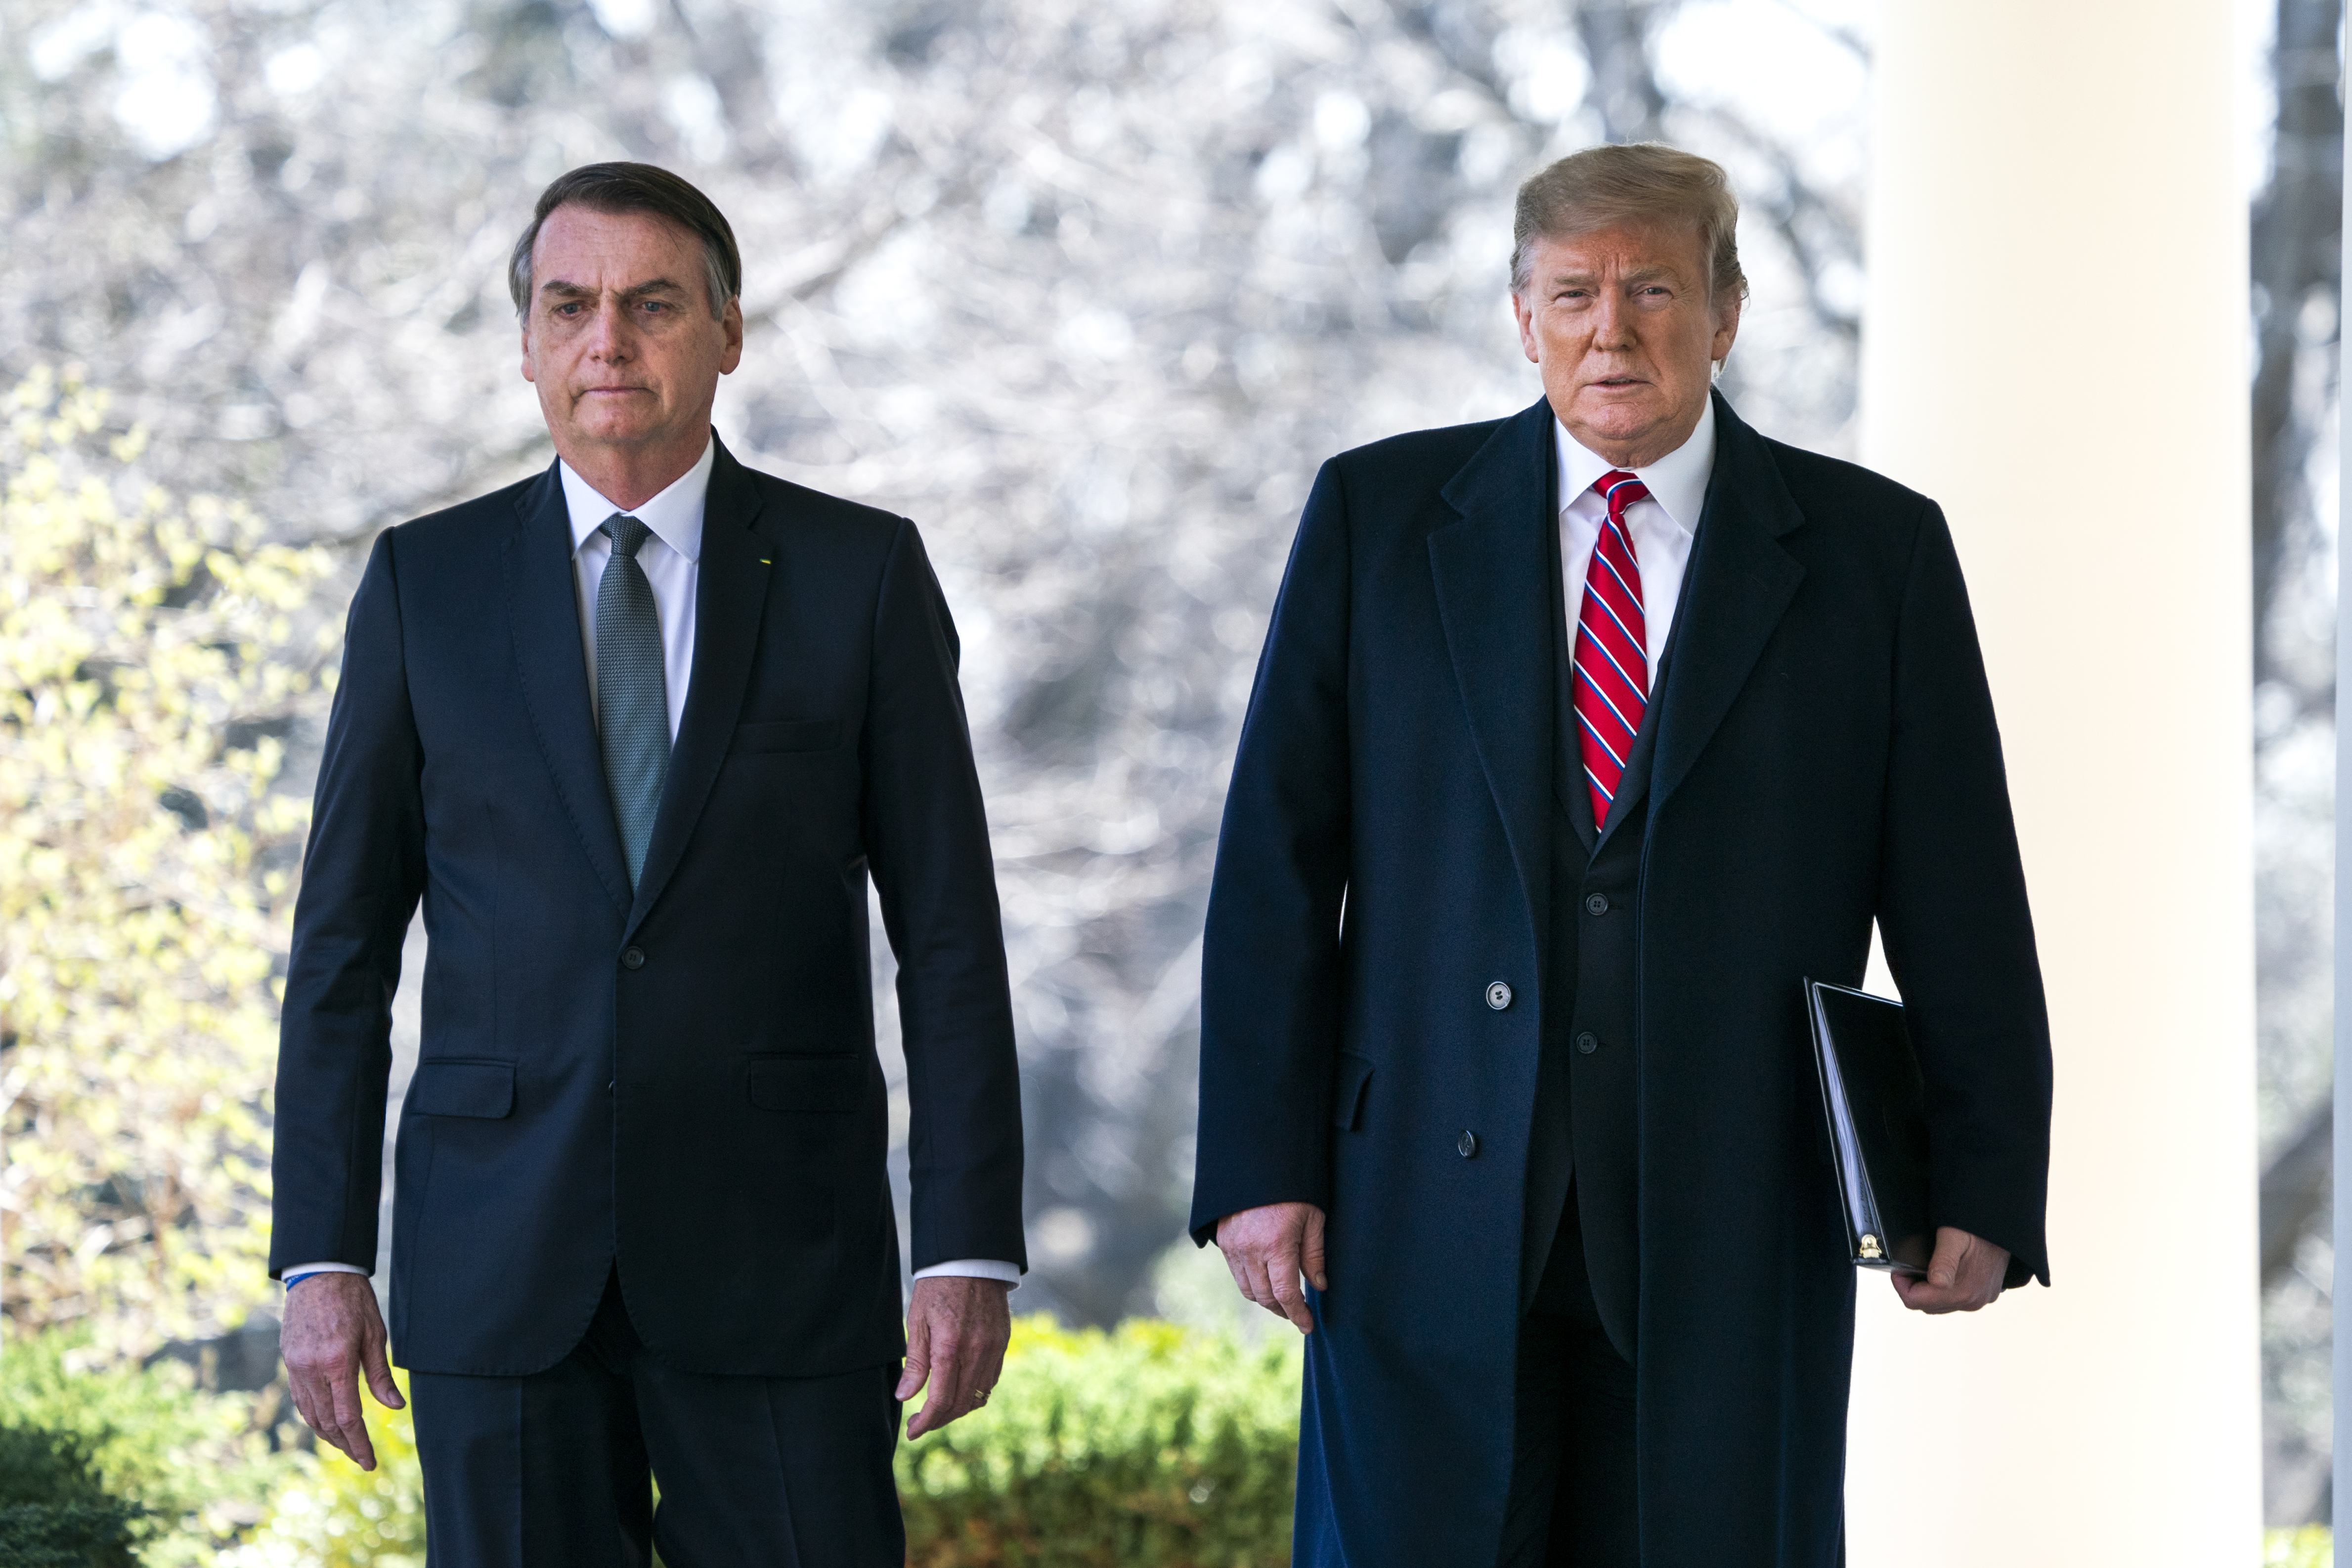 US President Donald Trump (R) and Brazilian President Jair Bolsonaro (L) walk down the Colonnade before a press conference at the Rose Garden of the White House March 19, 2019 in Washington, DC. (Photo by Jim Lo Scalzo-Pool via Getty Images)